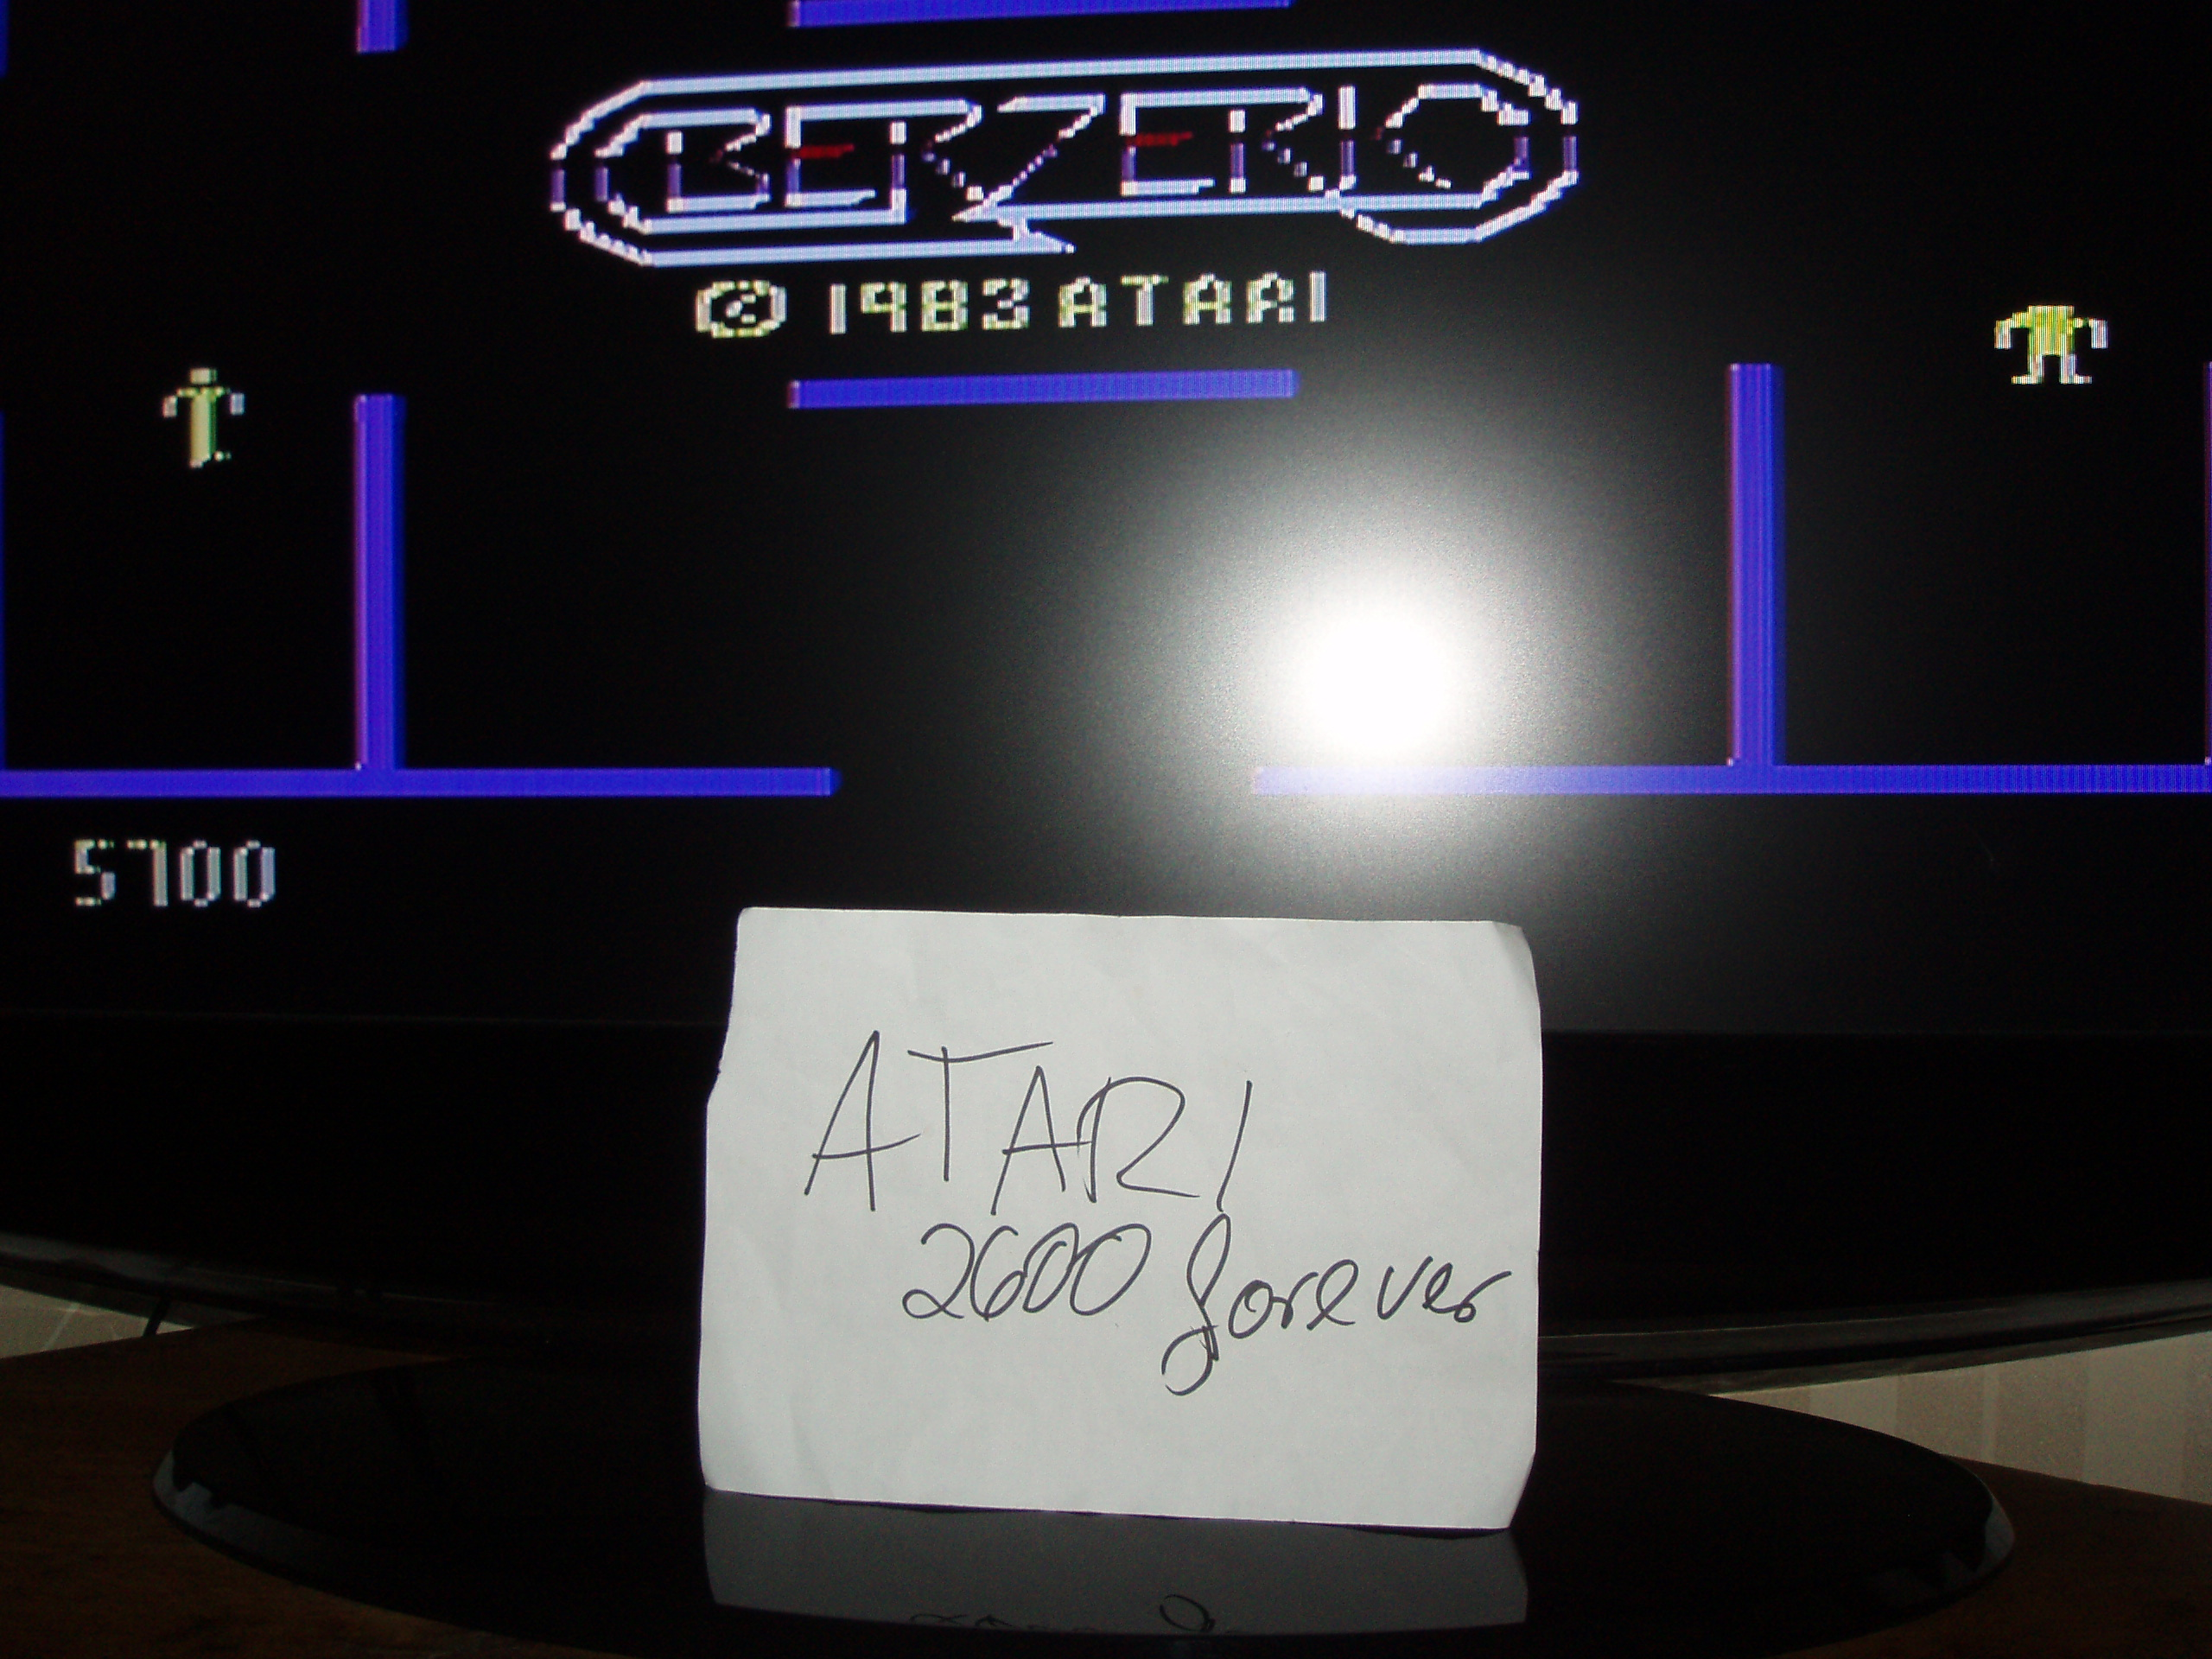 atari2600forever: Berzerk: Game 1 (Atari 5200) 5,700 points on 2018-07-13 03:16:20